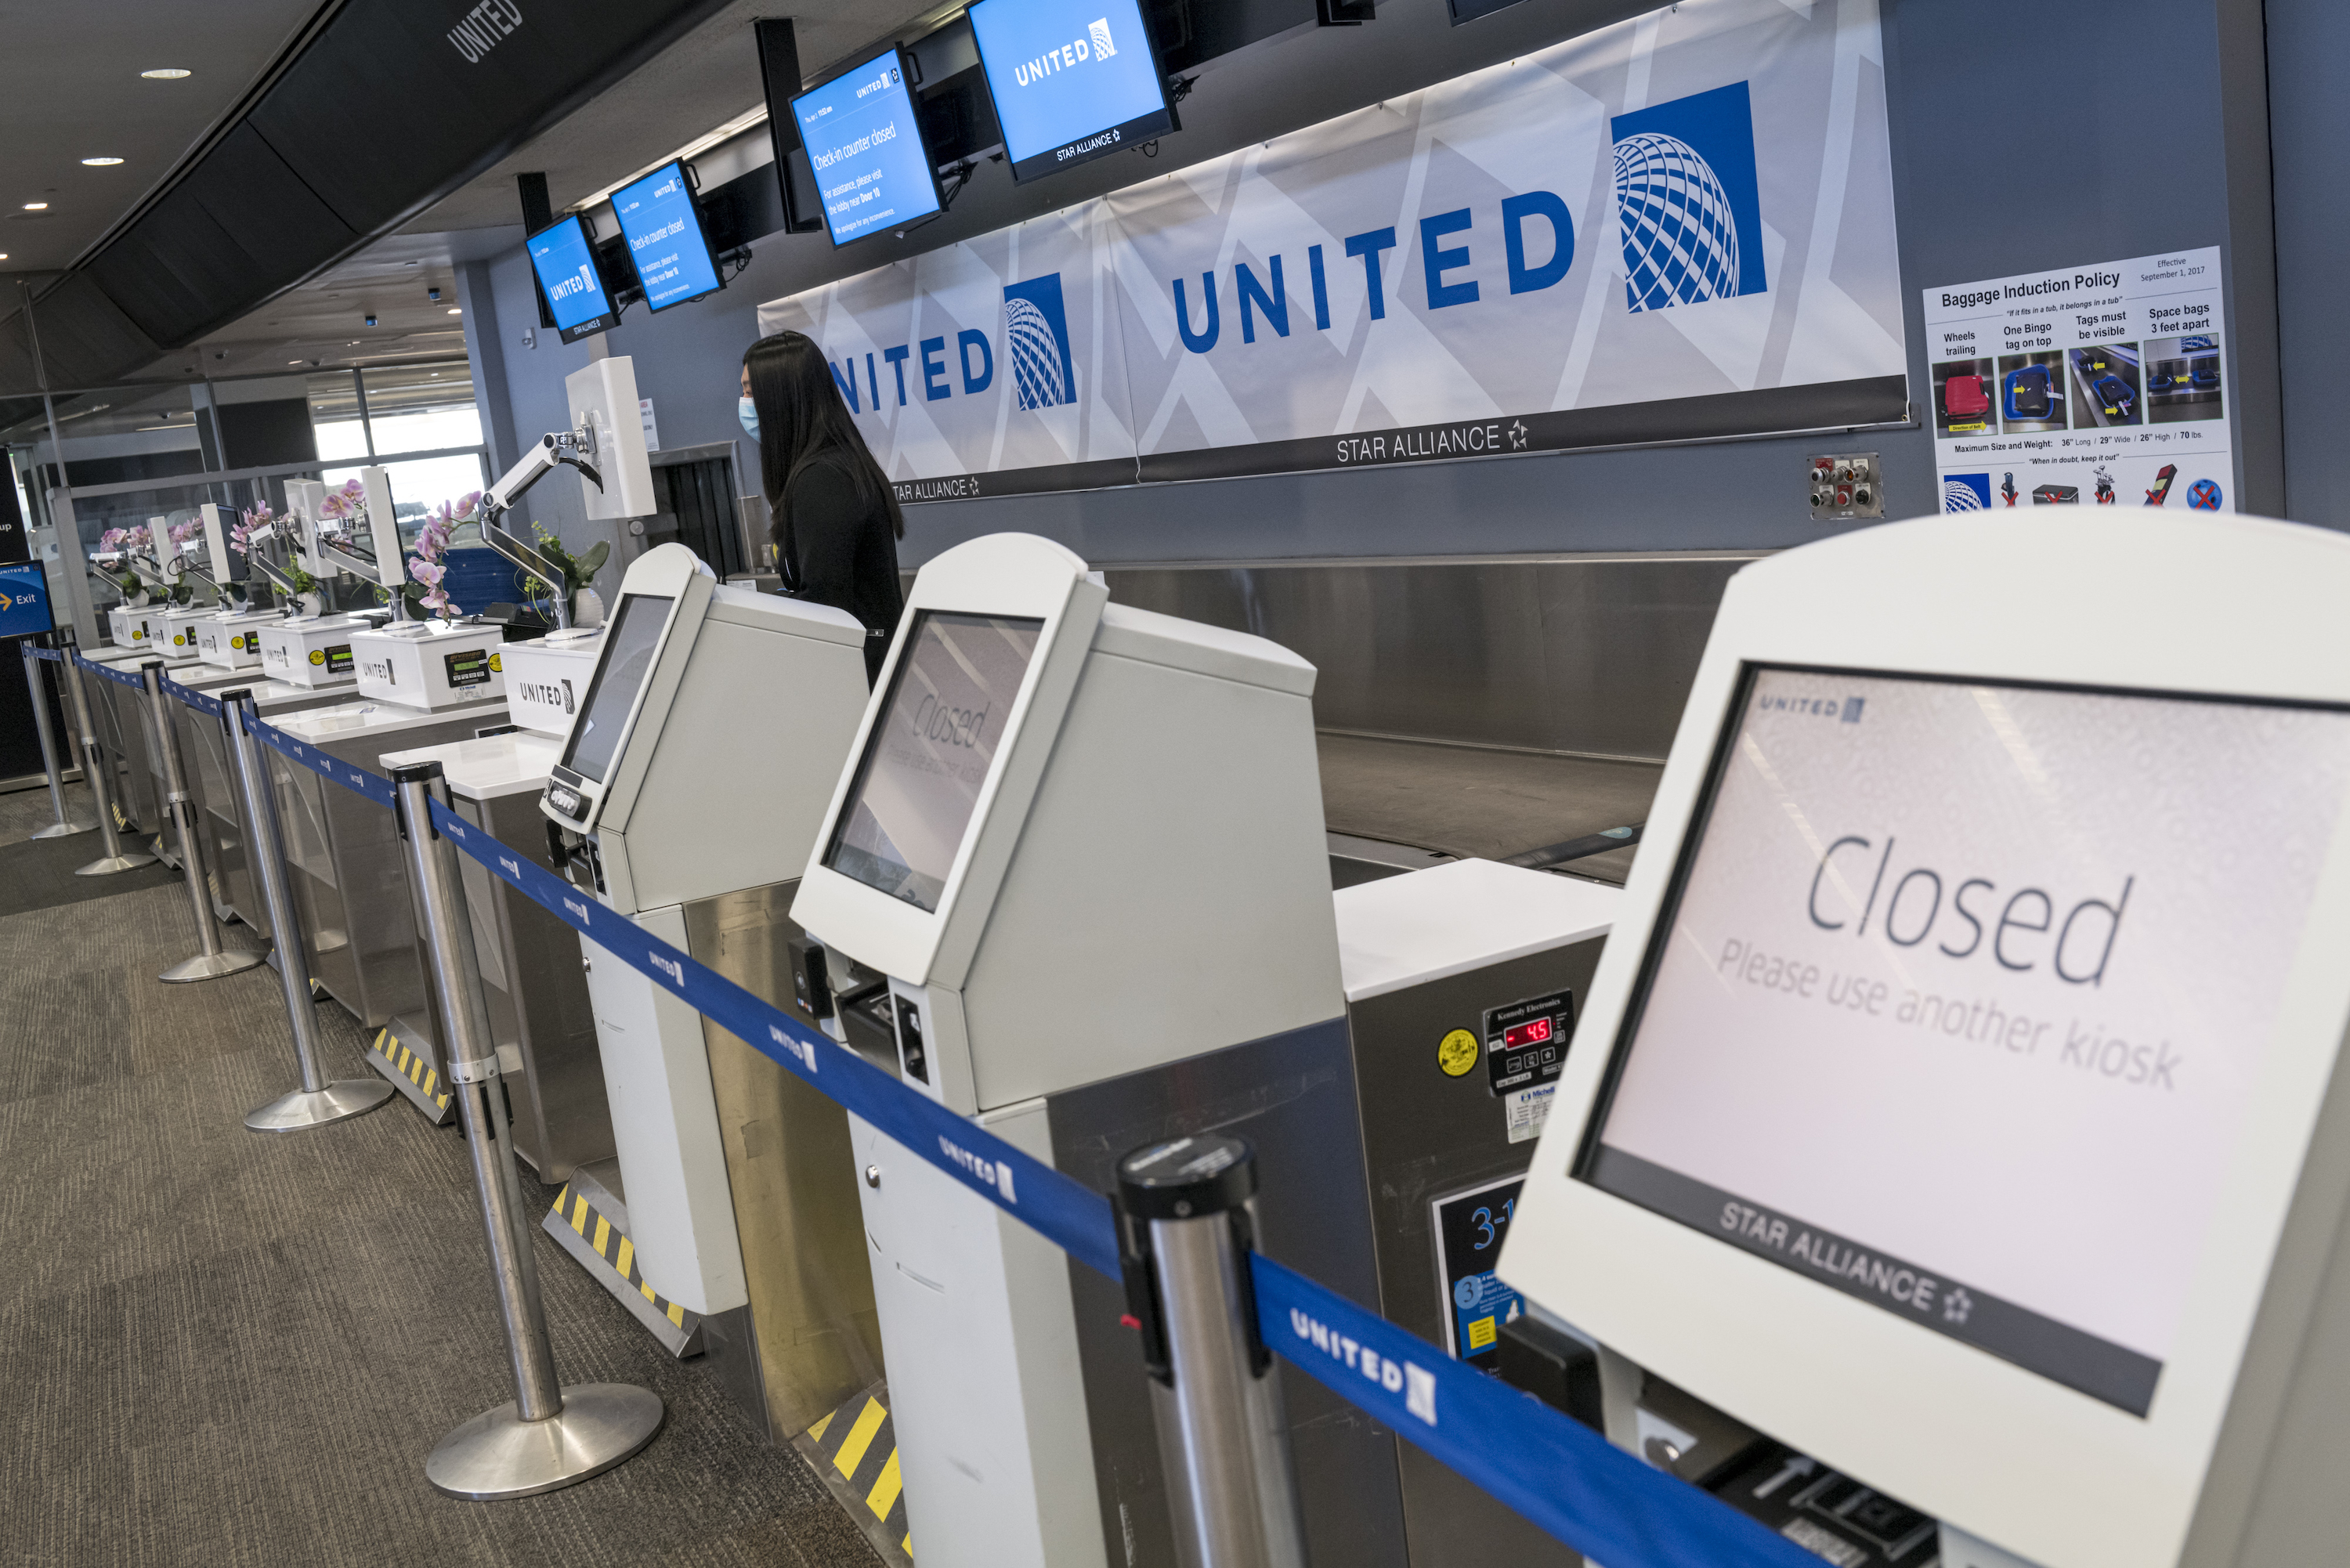 A United Airlines Holdings Inc. employee waits for a traveler at San Francisco International Airport in San Francisco, California, U.S., on April 2, 2020.